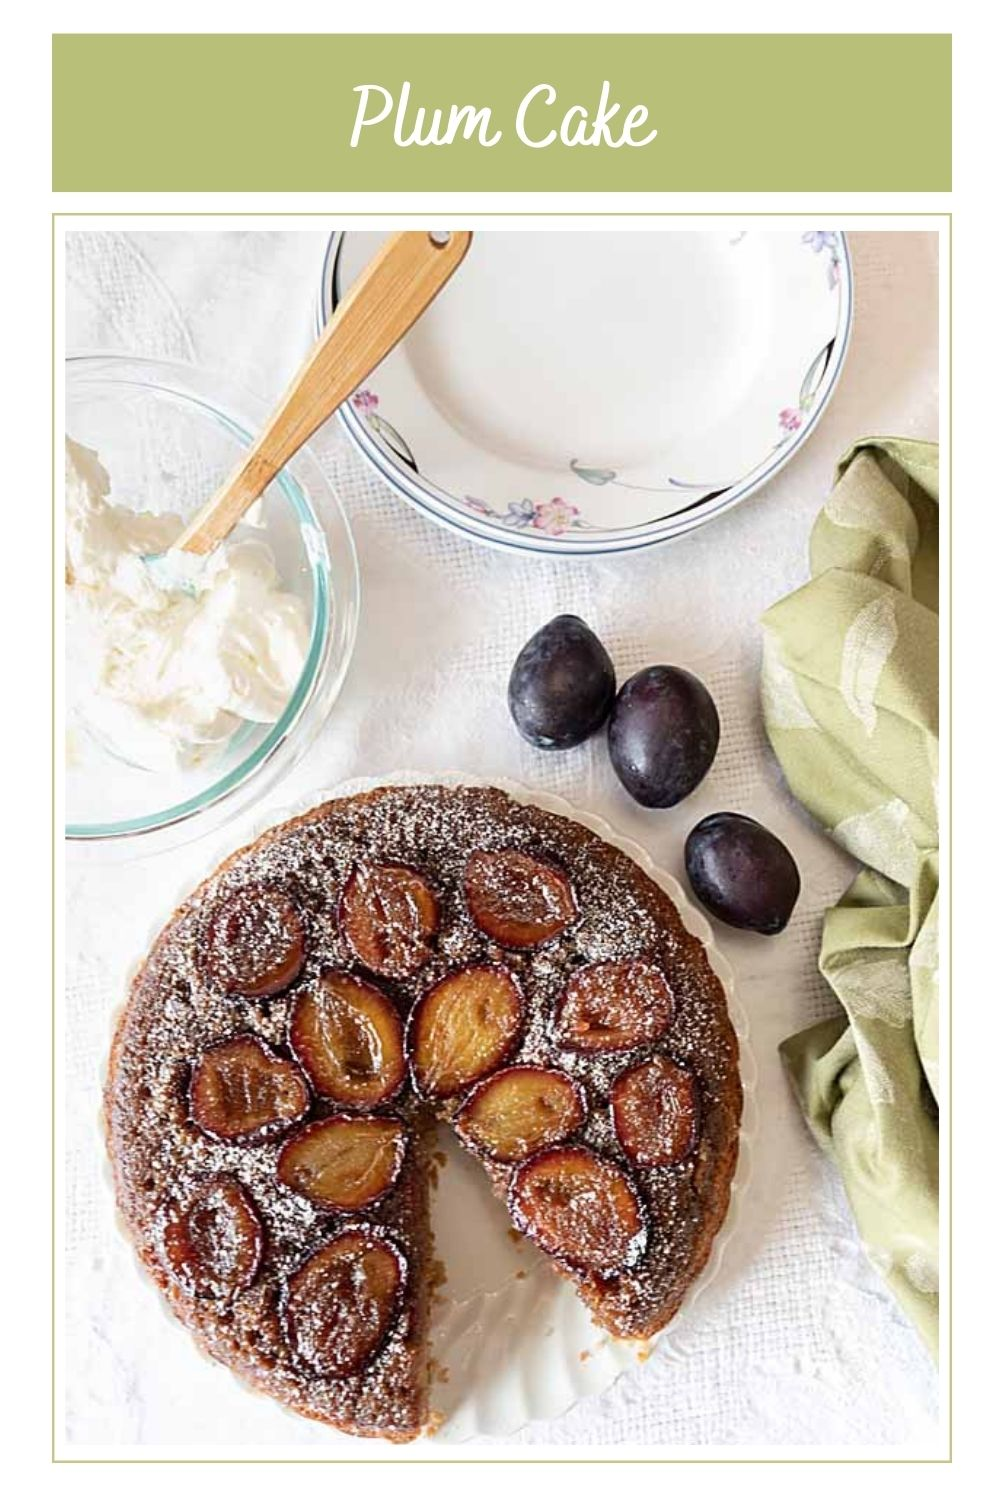 Caramelized and slightly crusty, this plum upside-down cake celebrates fall perfectly—for breakfast or dessert.